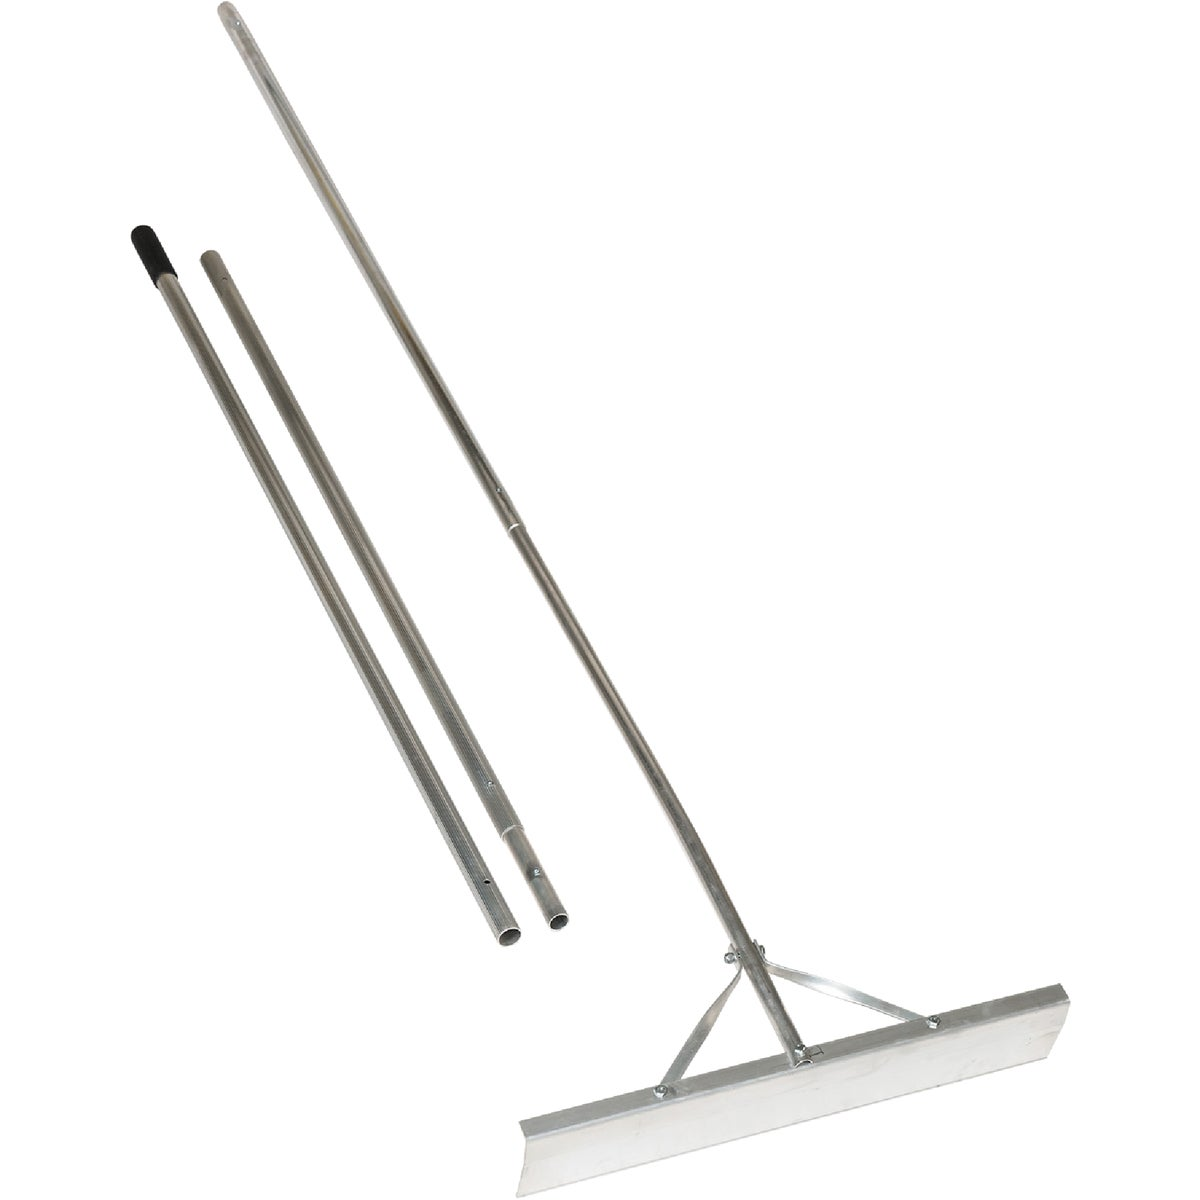 SNOW ROOF RAKE - 96022 by Seymour Mfg Co